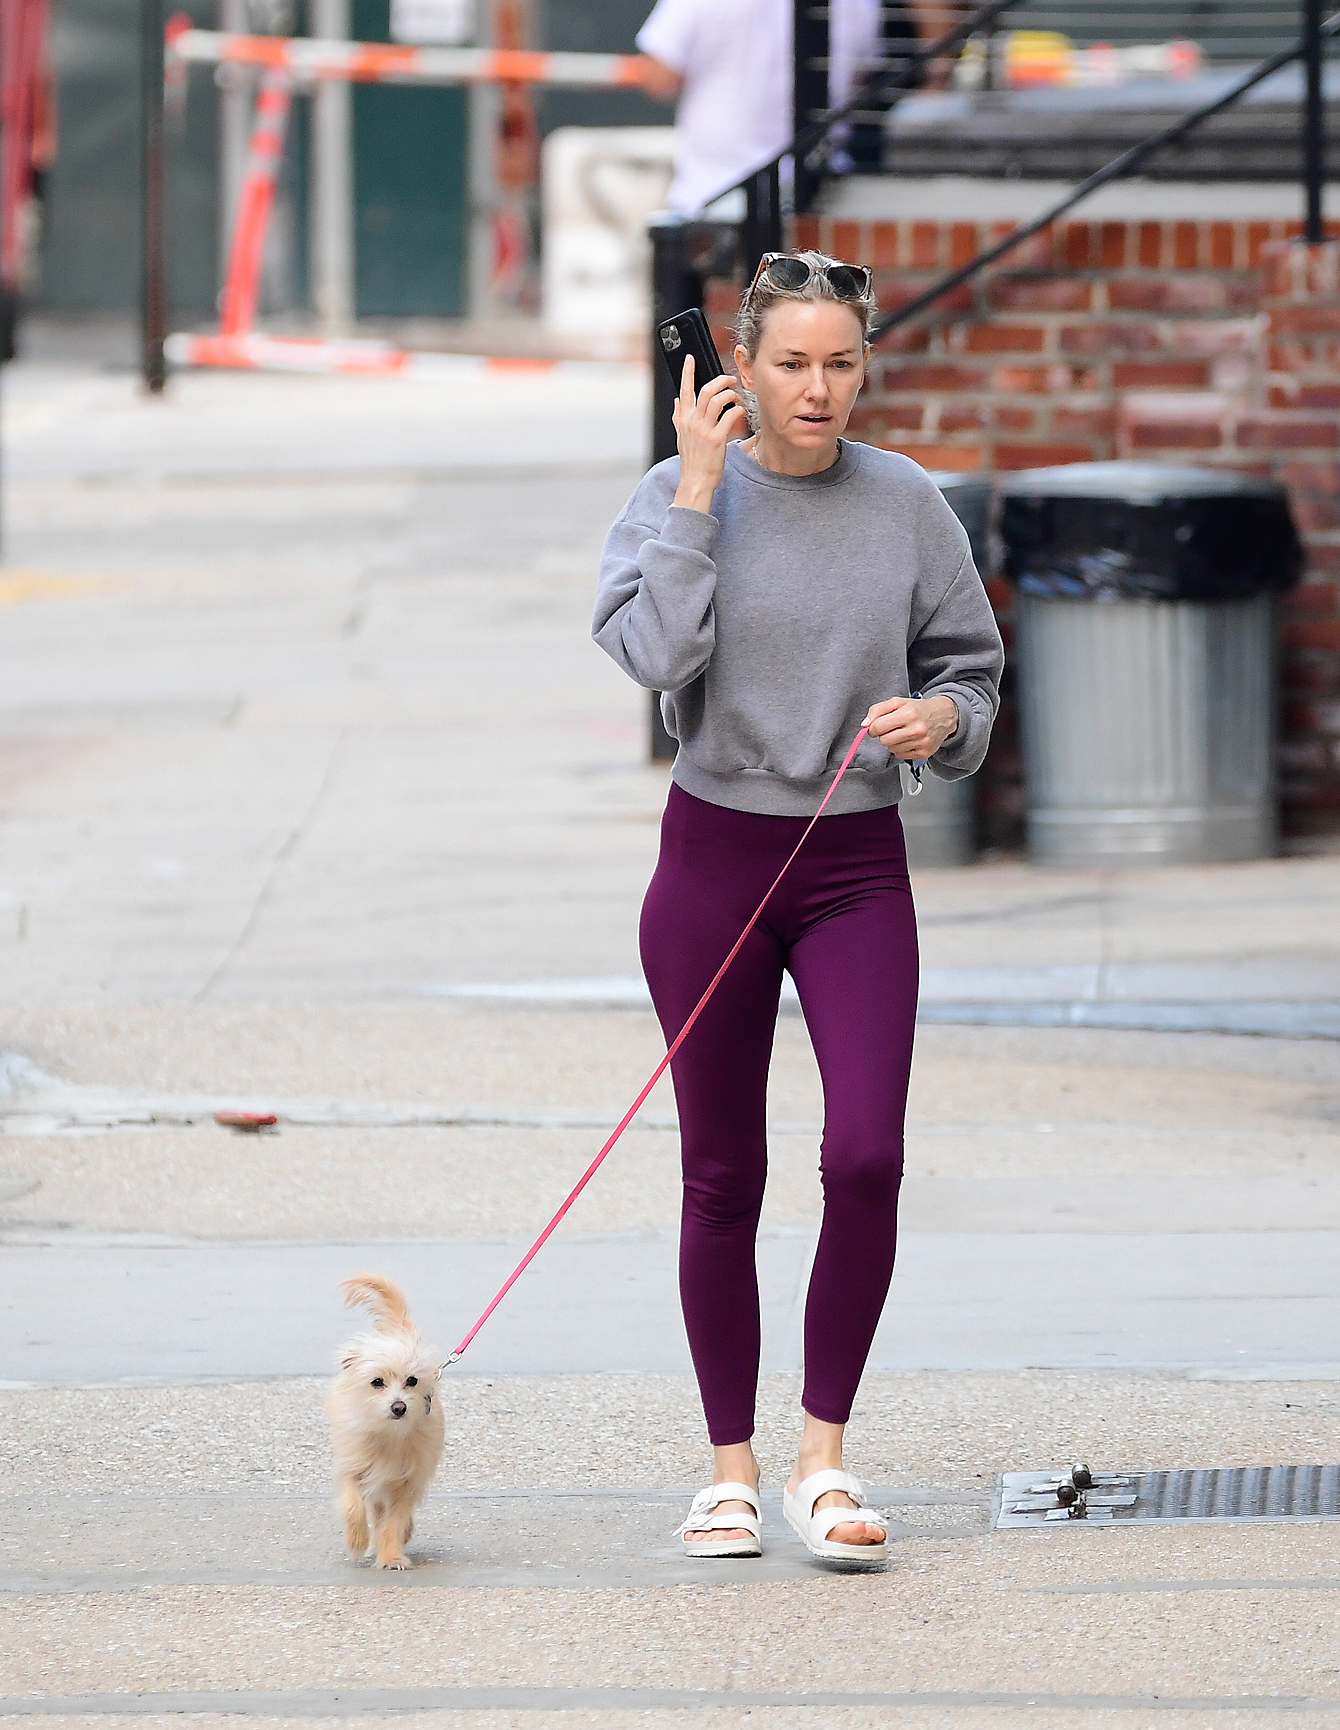 A Makeup Free Naomi Watts Steps Out For a Dog Walk in New York City